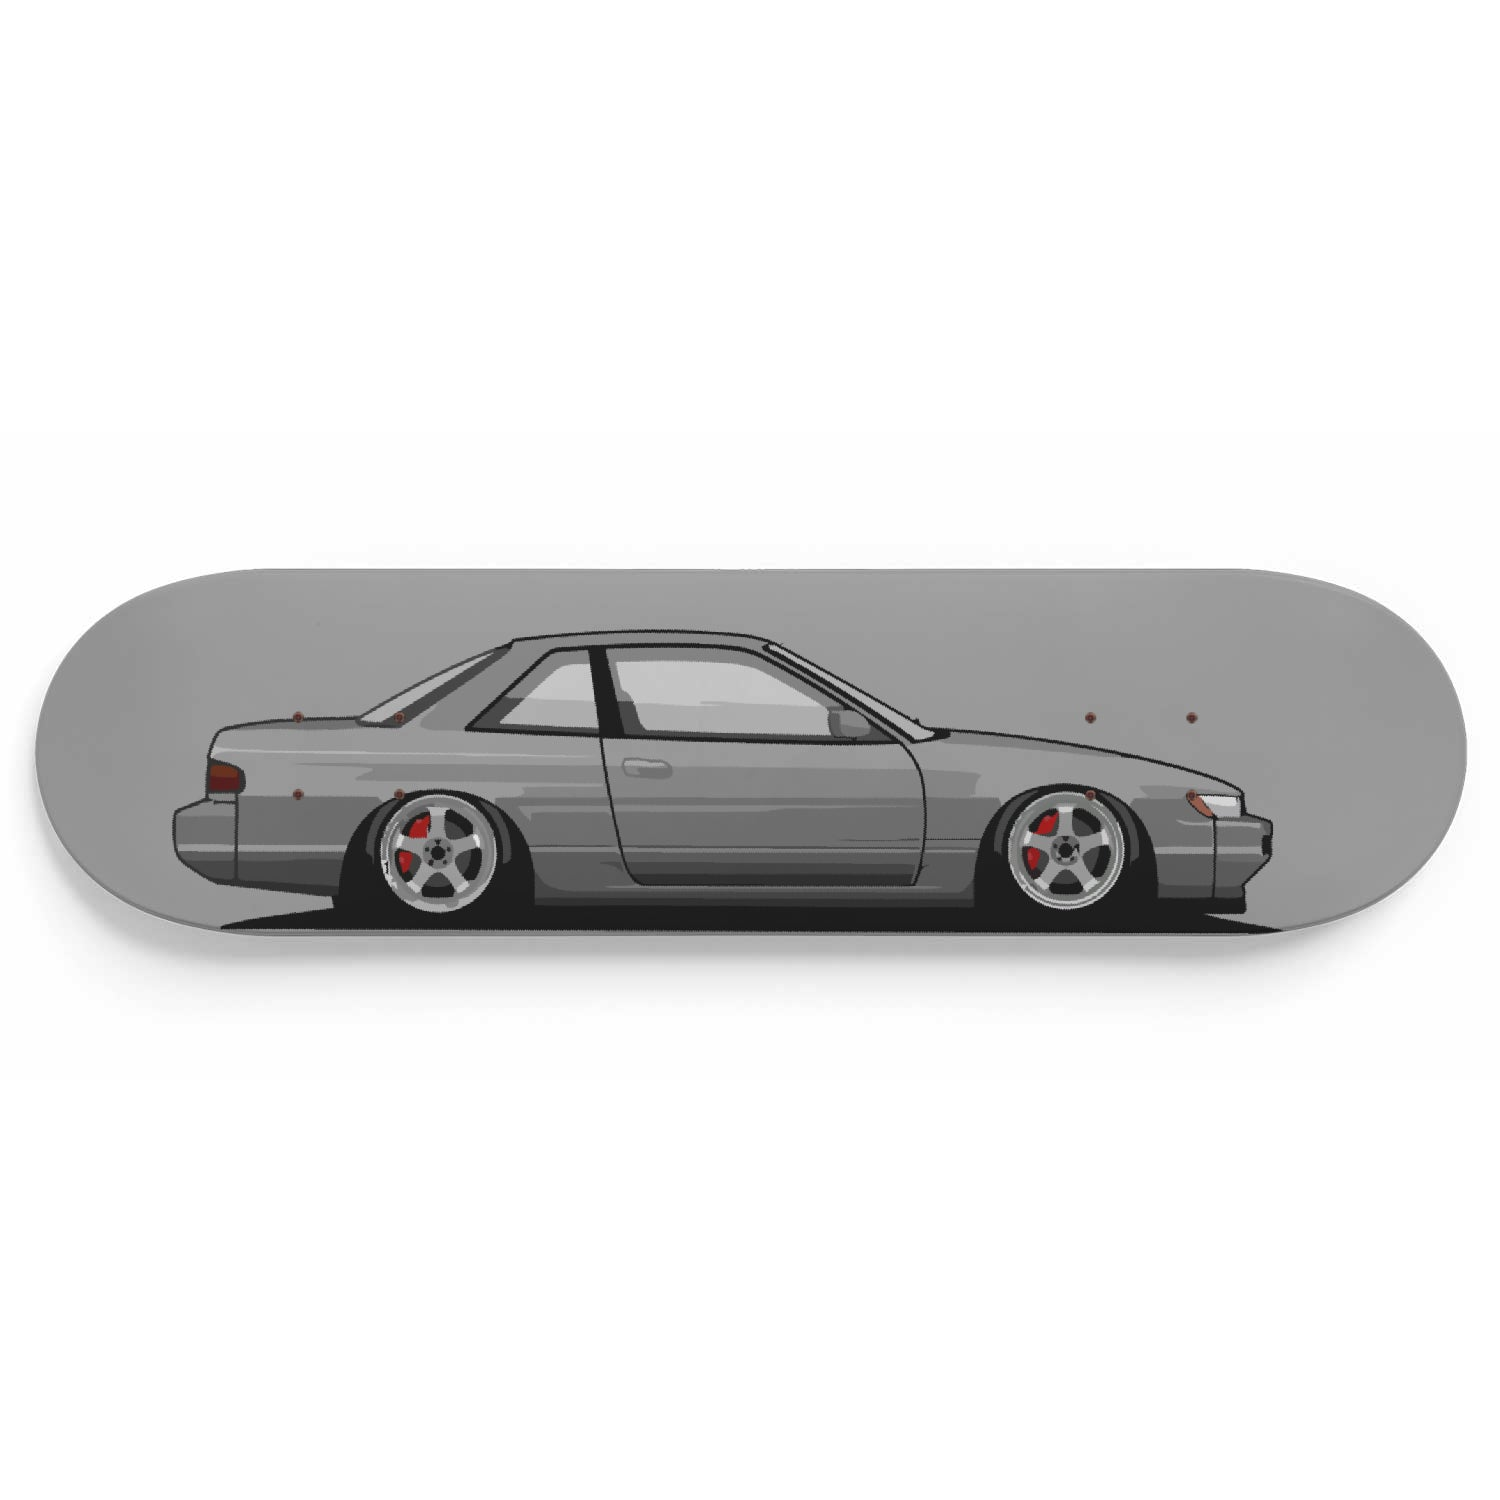 S13 Skateboard Wall Art Matched